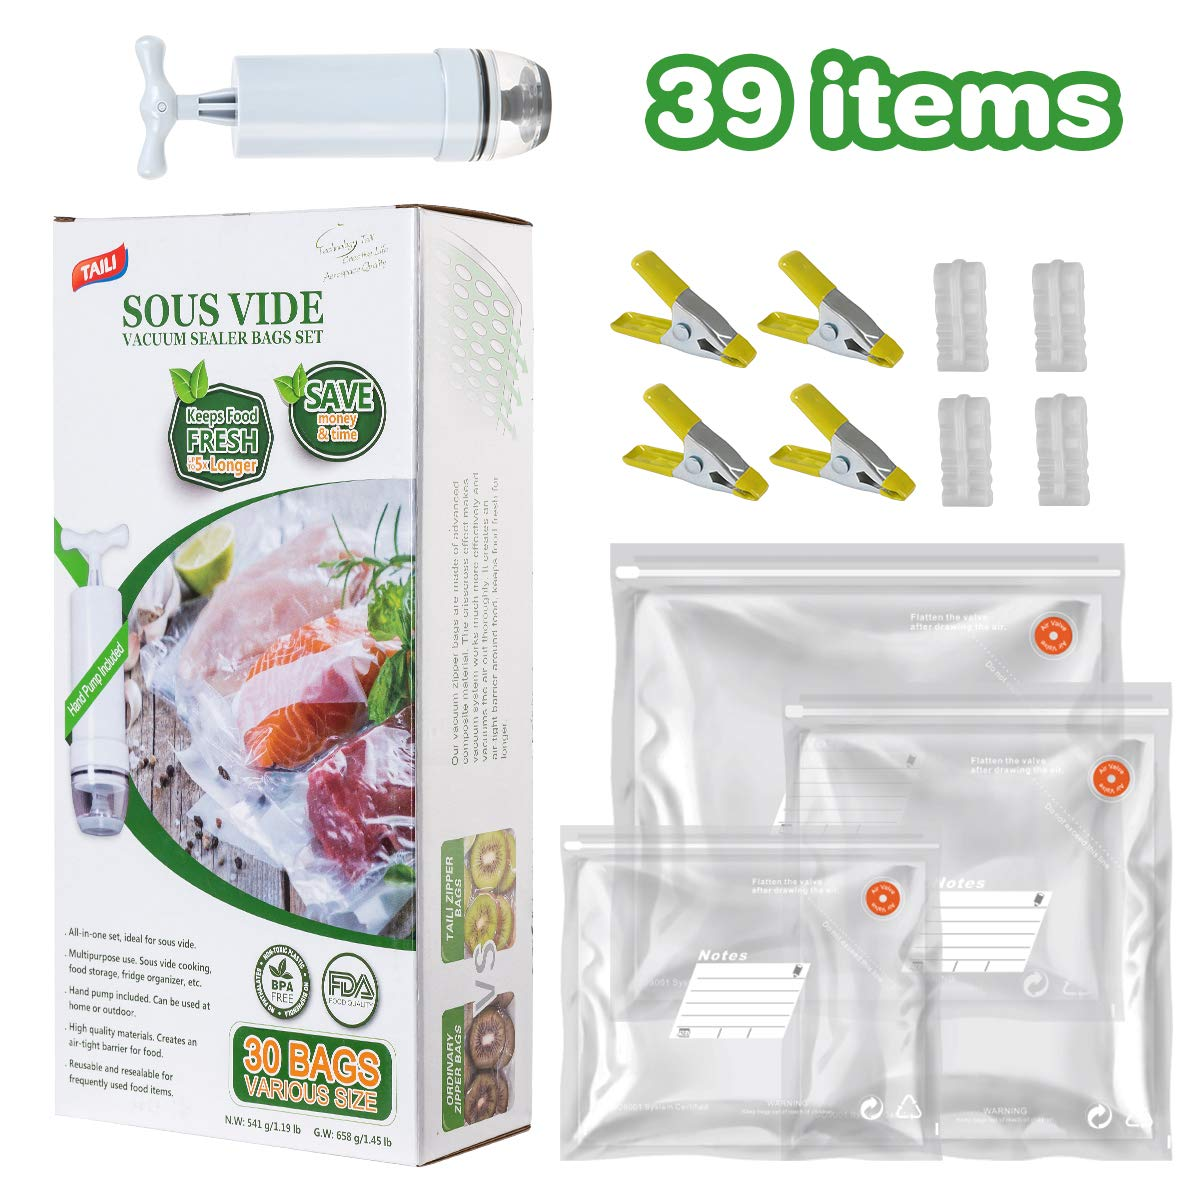 TAILI Sous Vide Bags Kit for Anova and Joule Cookers, 30x (3 Sizes) Reusable Vacuum Sealer Bags, BPA Free Vacuum Food Storage Bags,1 Hand Pump, 4 Sealing Clips and 4 Sous Vide Bag Clips